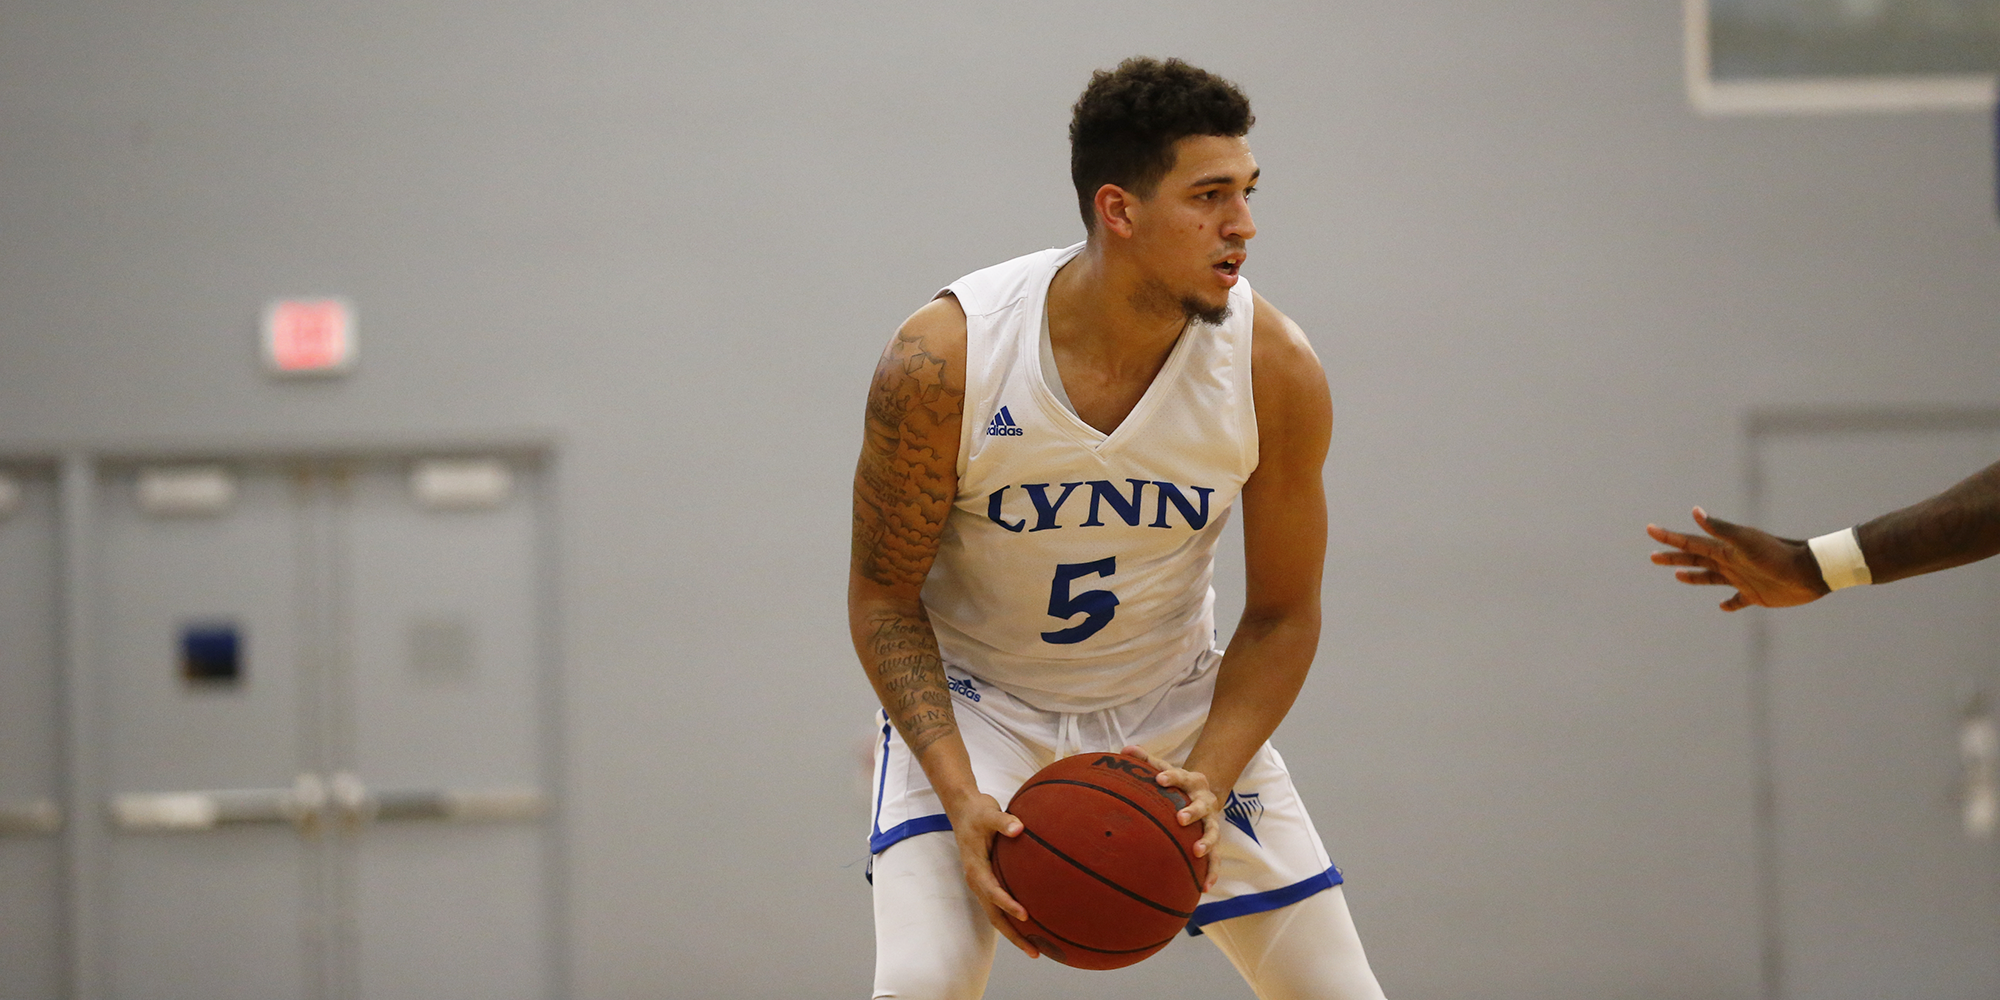 Baez Drops 38, Moore Drills Another Game-Winner in No. 12 Men's Basketball's Overtime Redemption